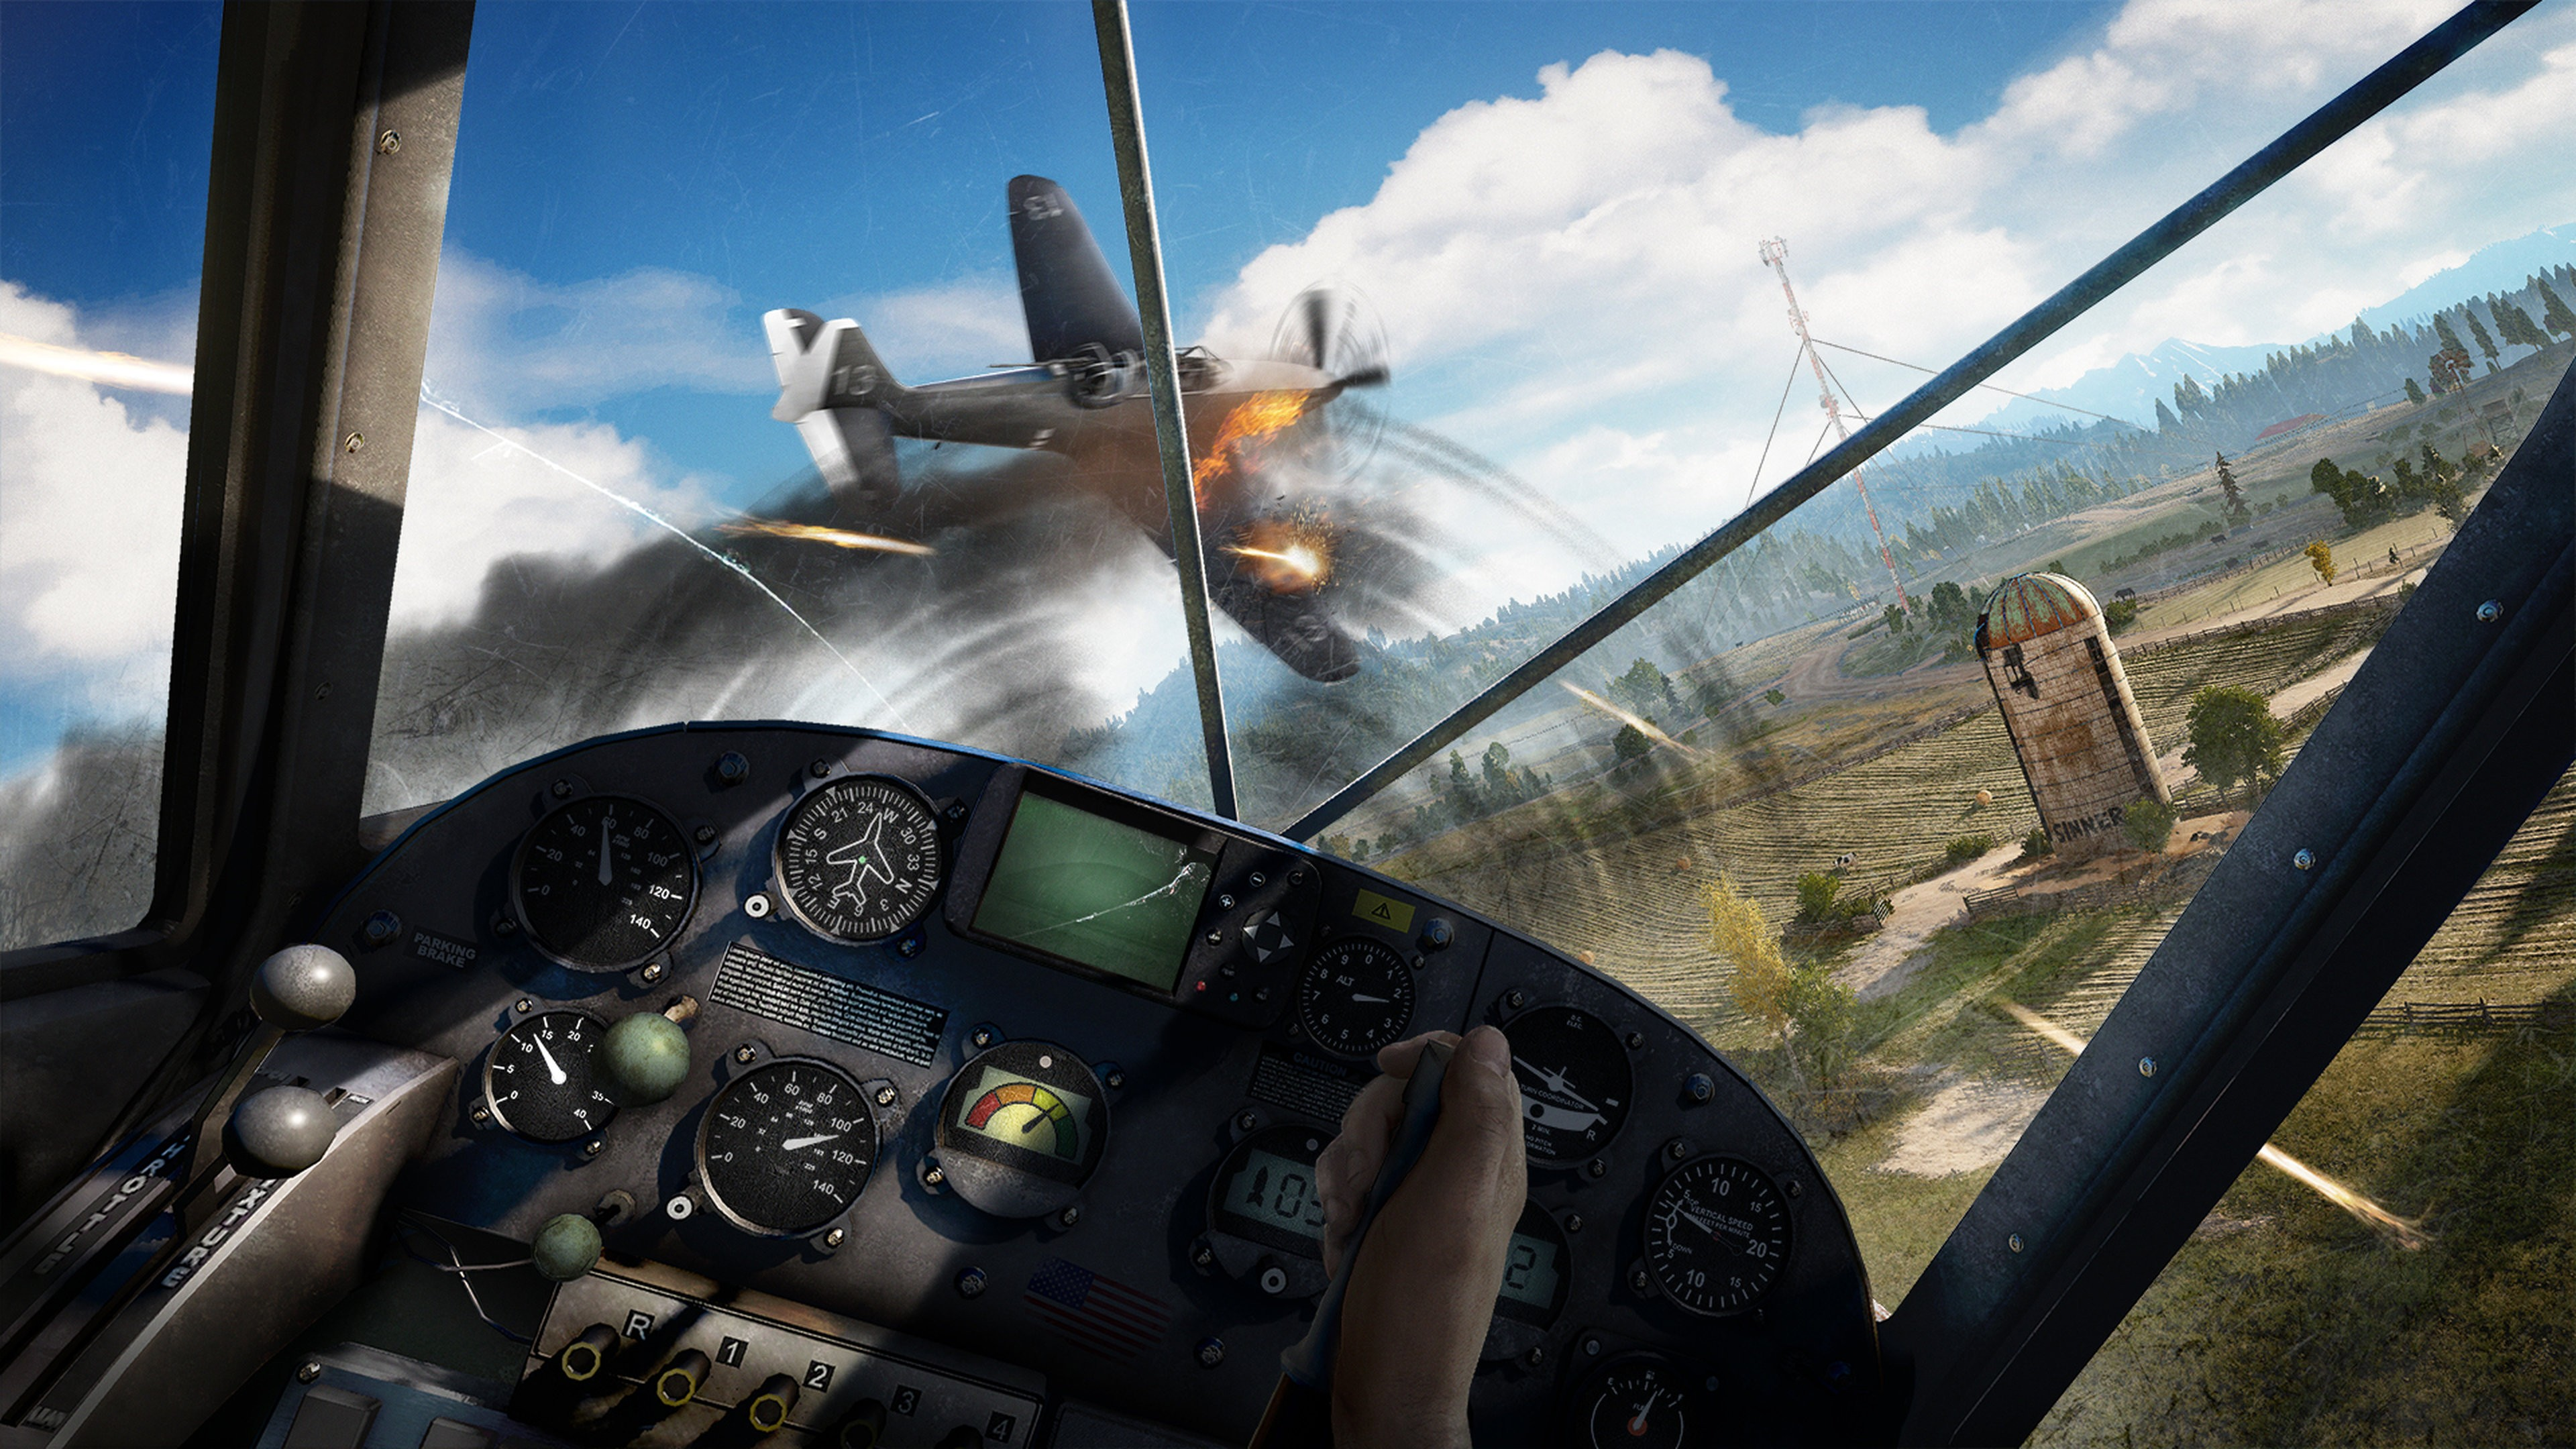 Pictures Far Cry 5 Airplane Cockpit Games Flight 3840x2160